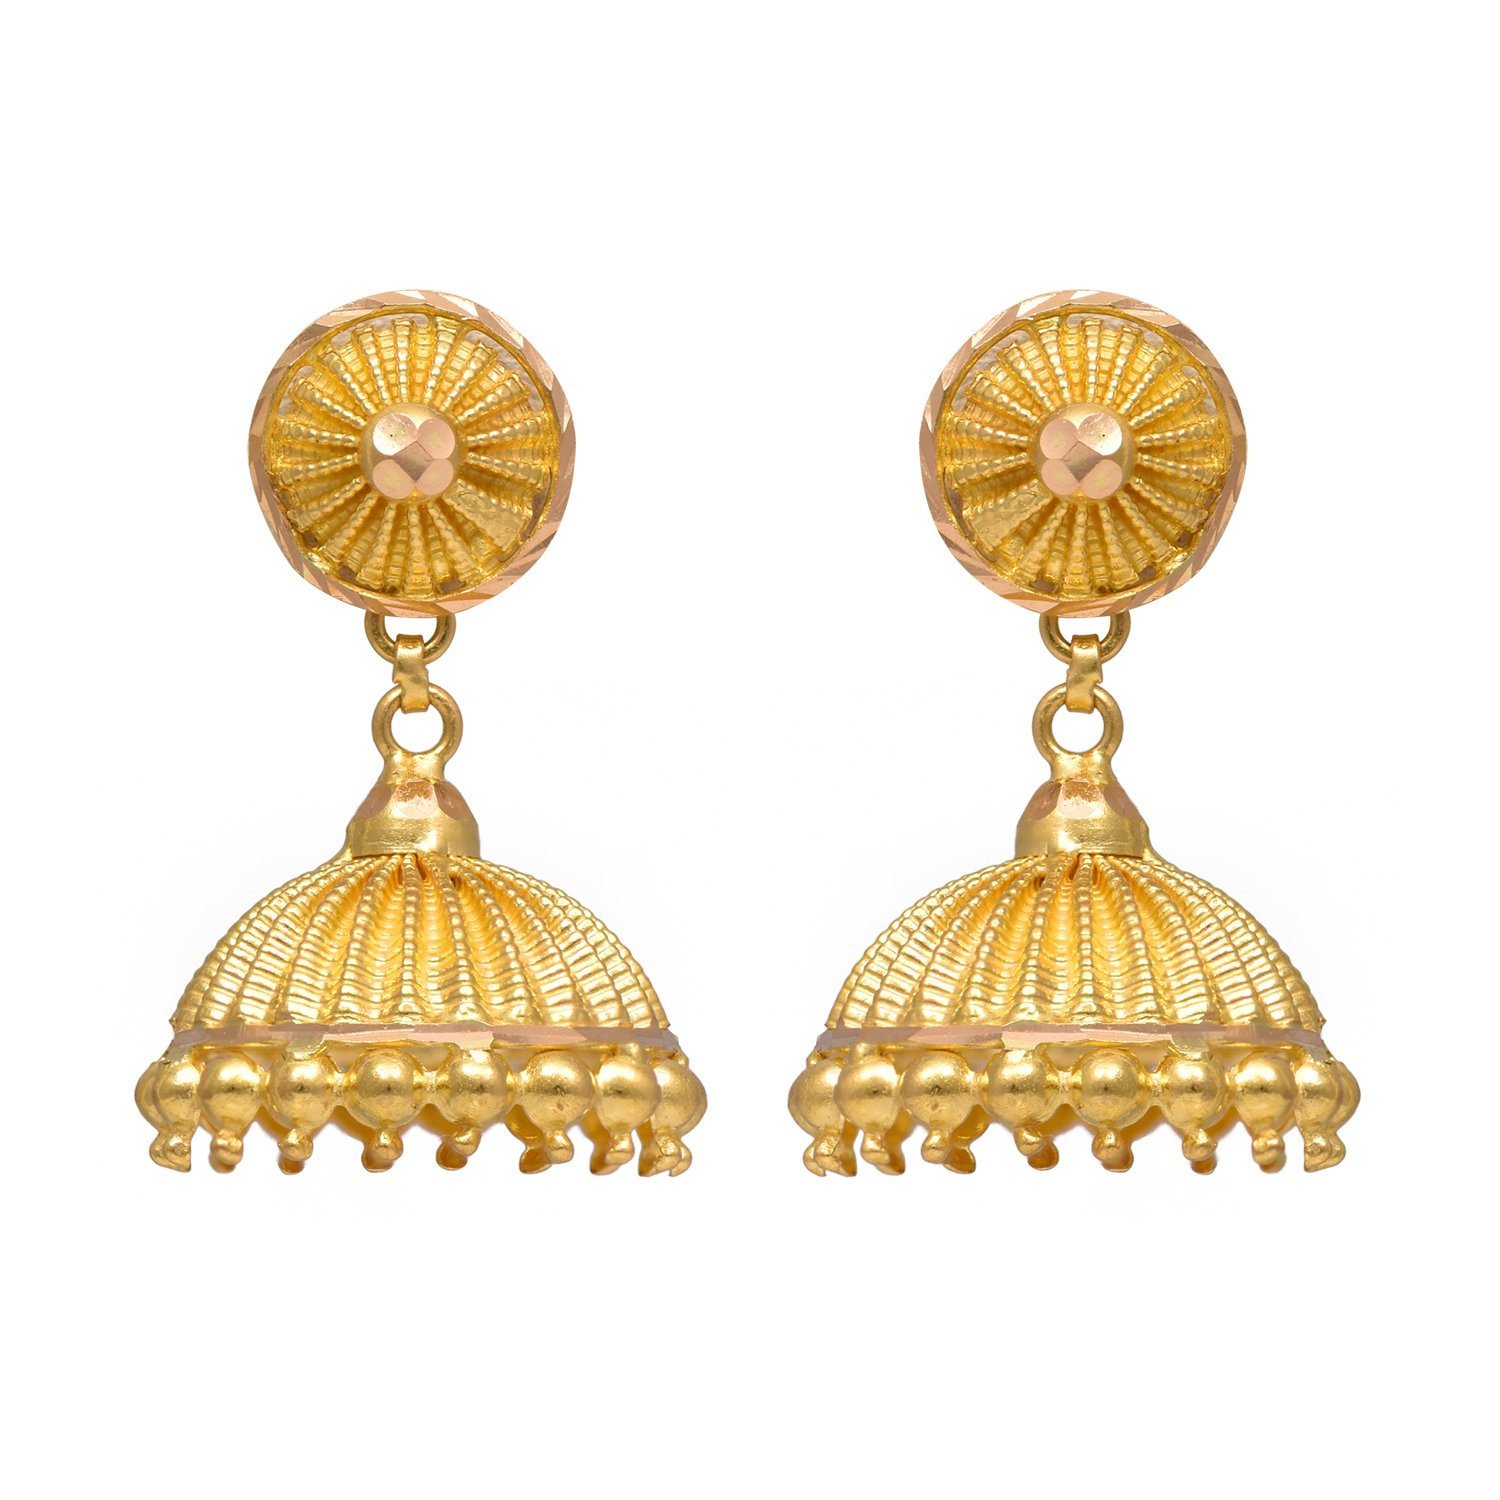 jacknjewel earring floral gold jewellery circled earrings com